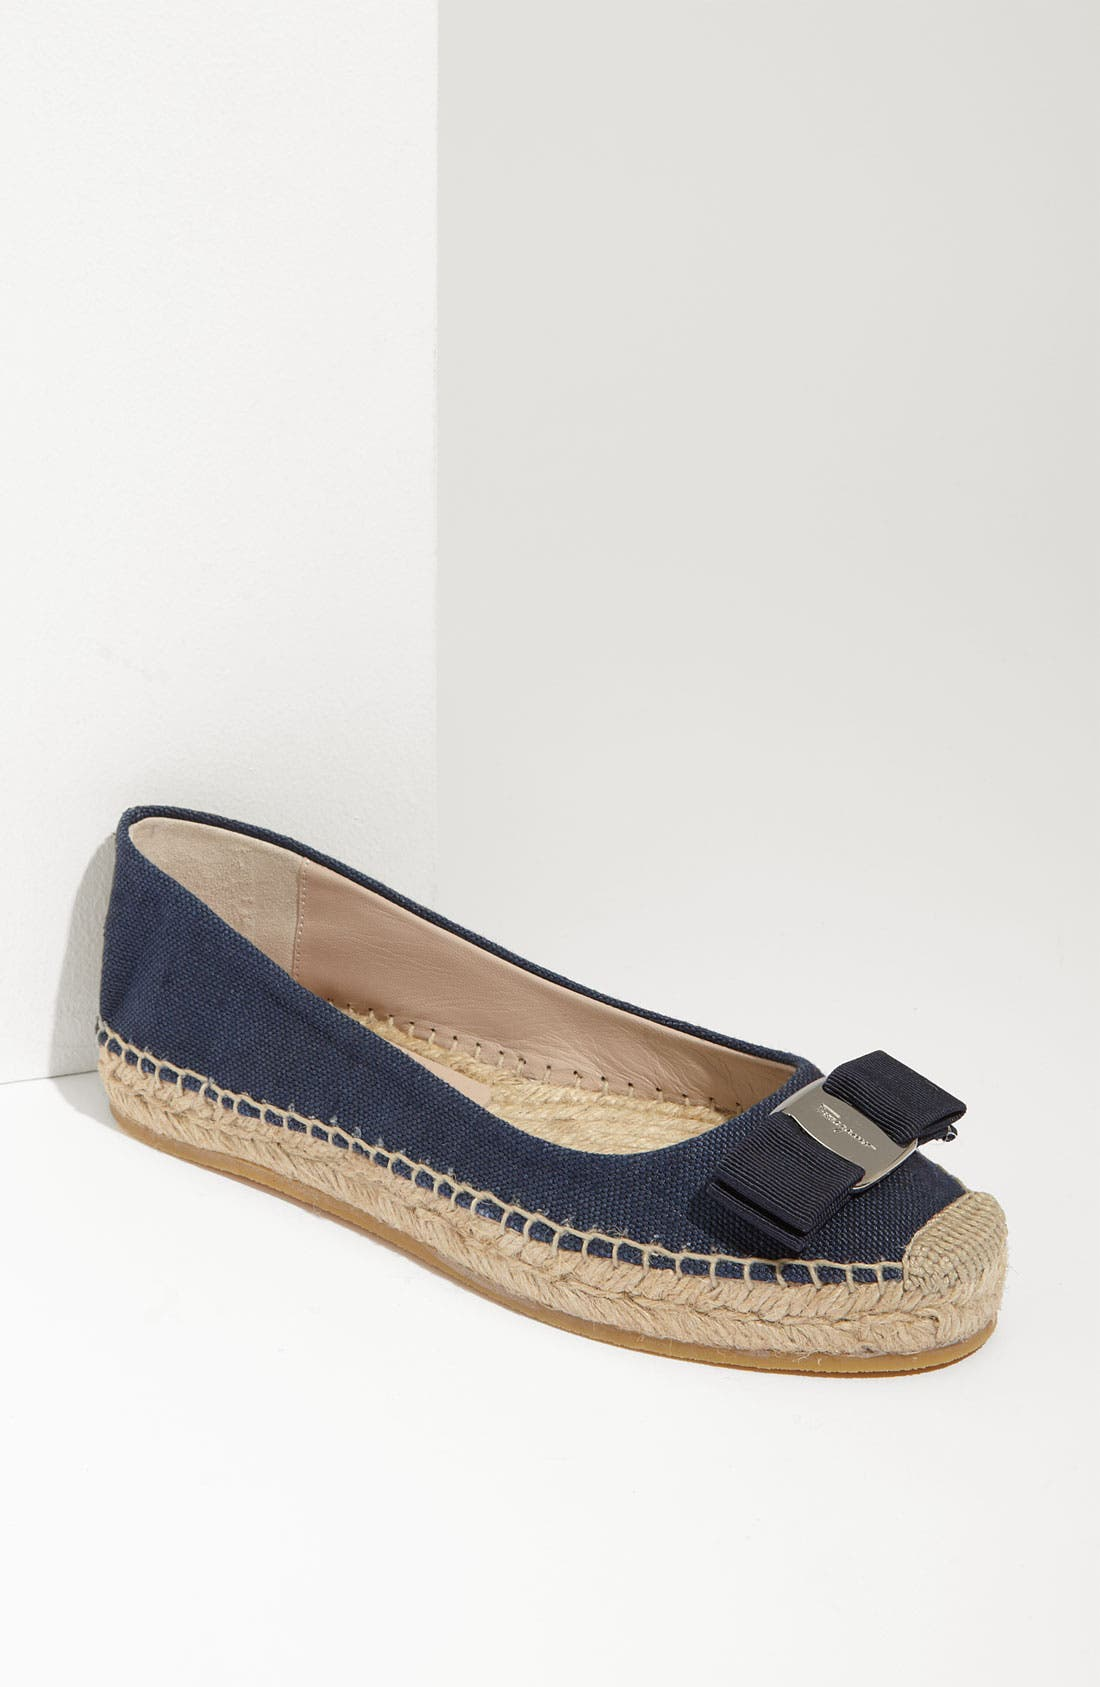 Alternate Image 1 Selected - Salvatore Ferragamo 'Blake' Flat